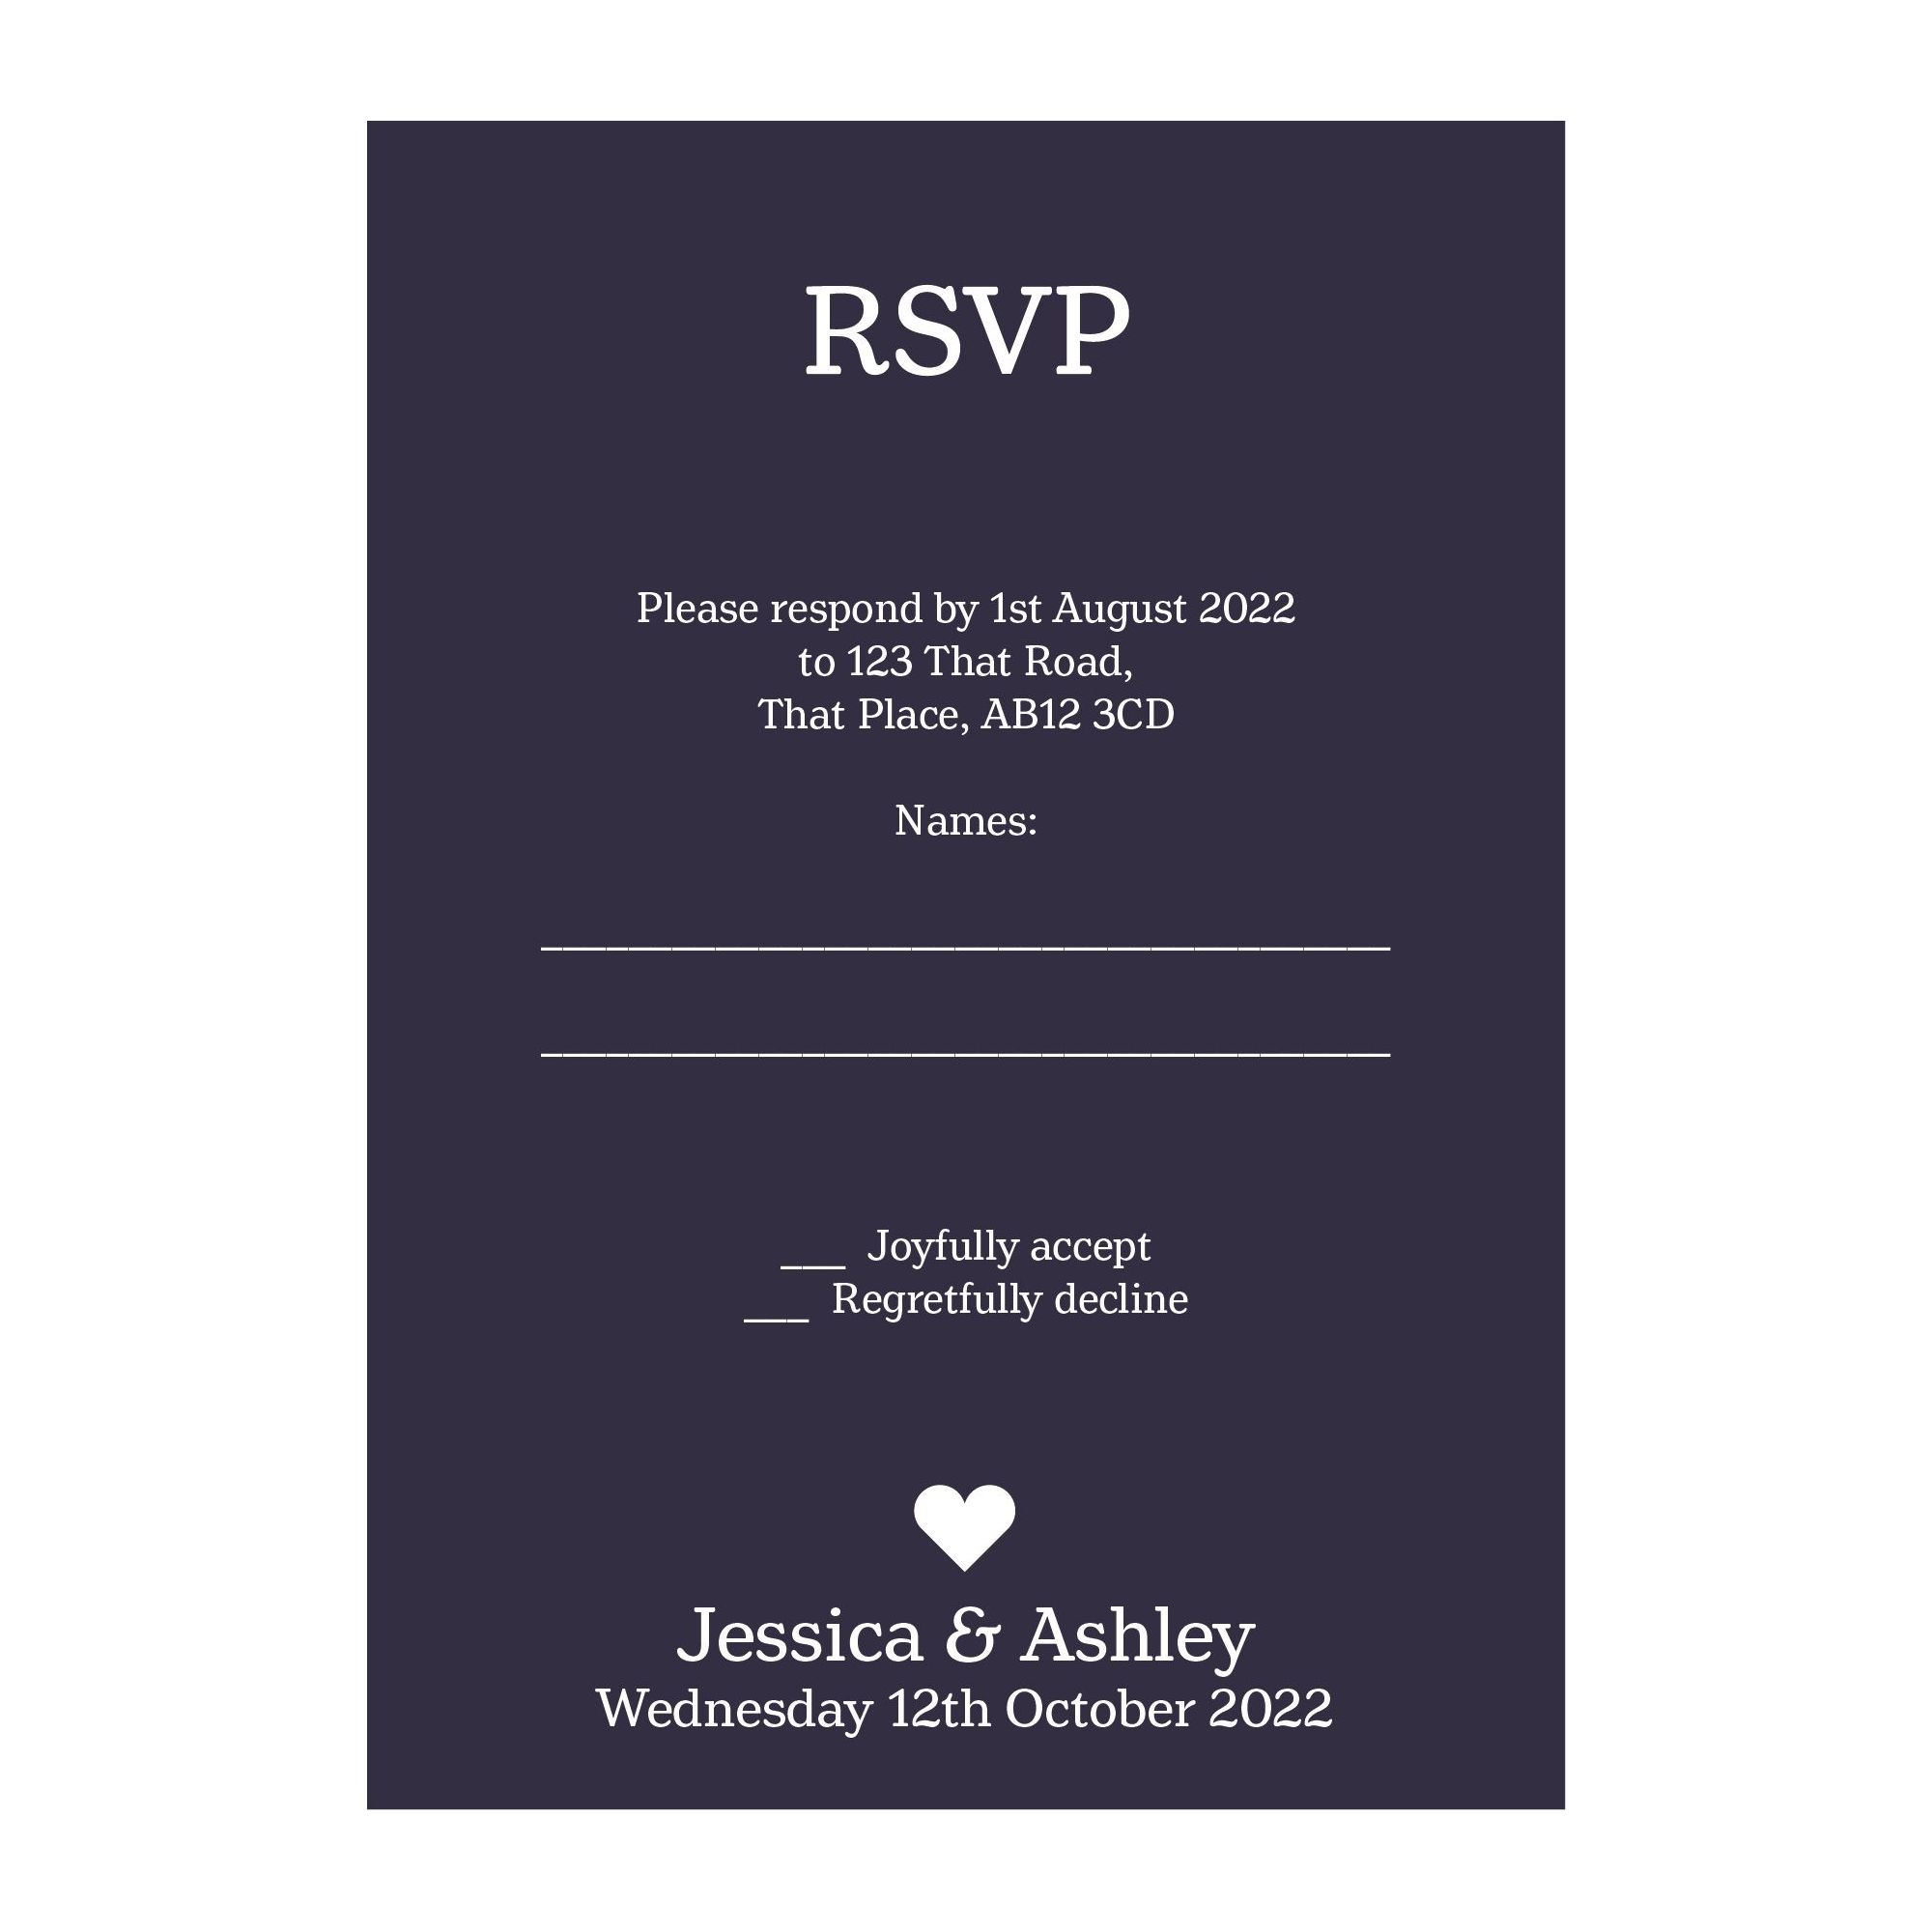 Navy Blue with White Ink Classic Swirl Decorative RSVP Cards